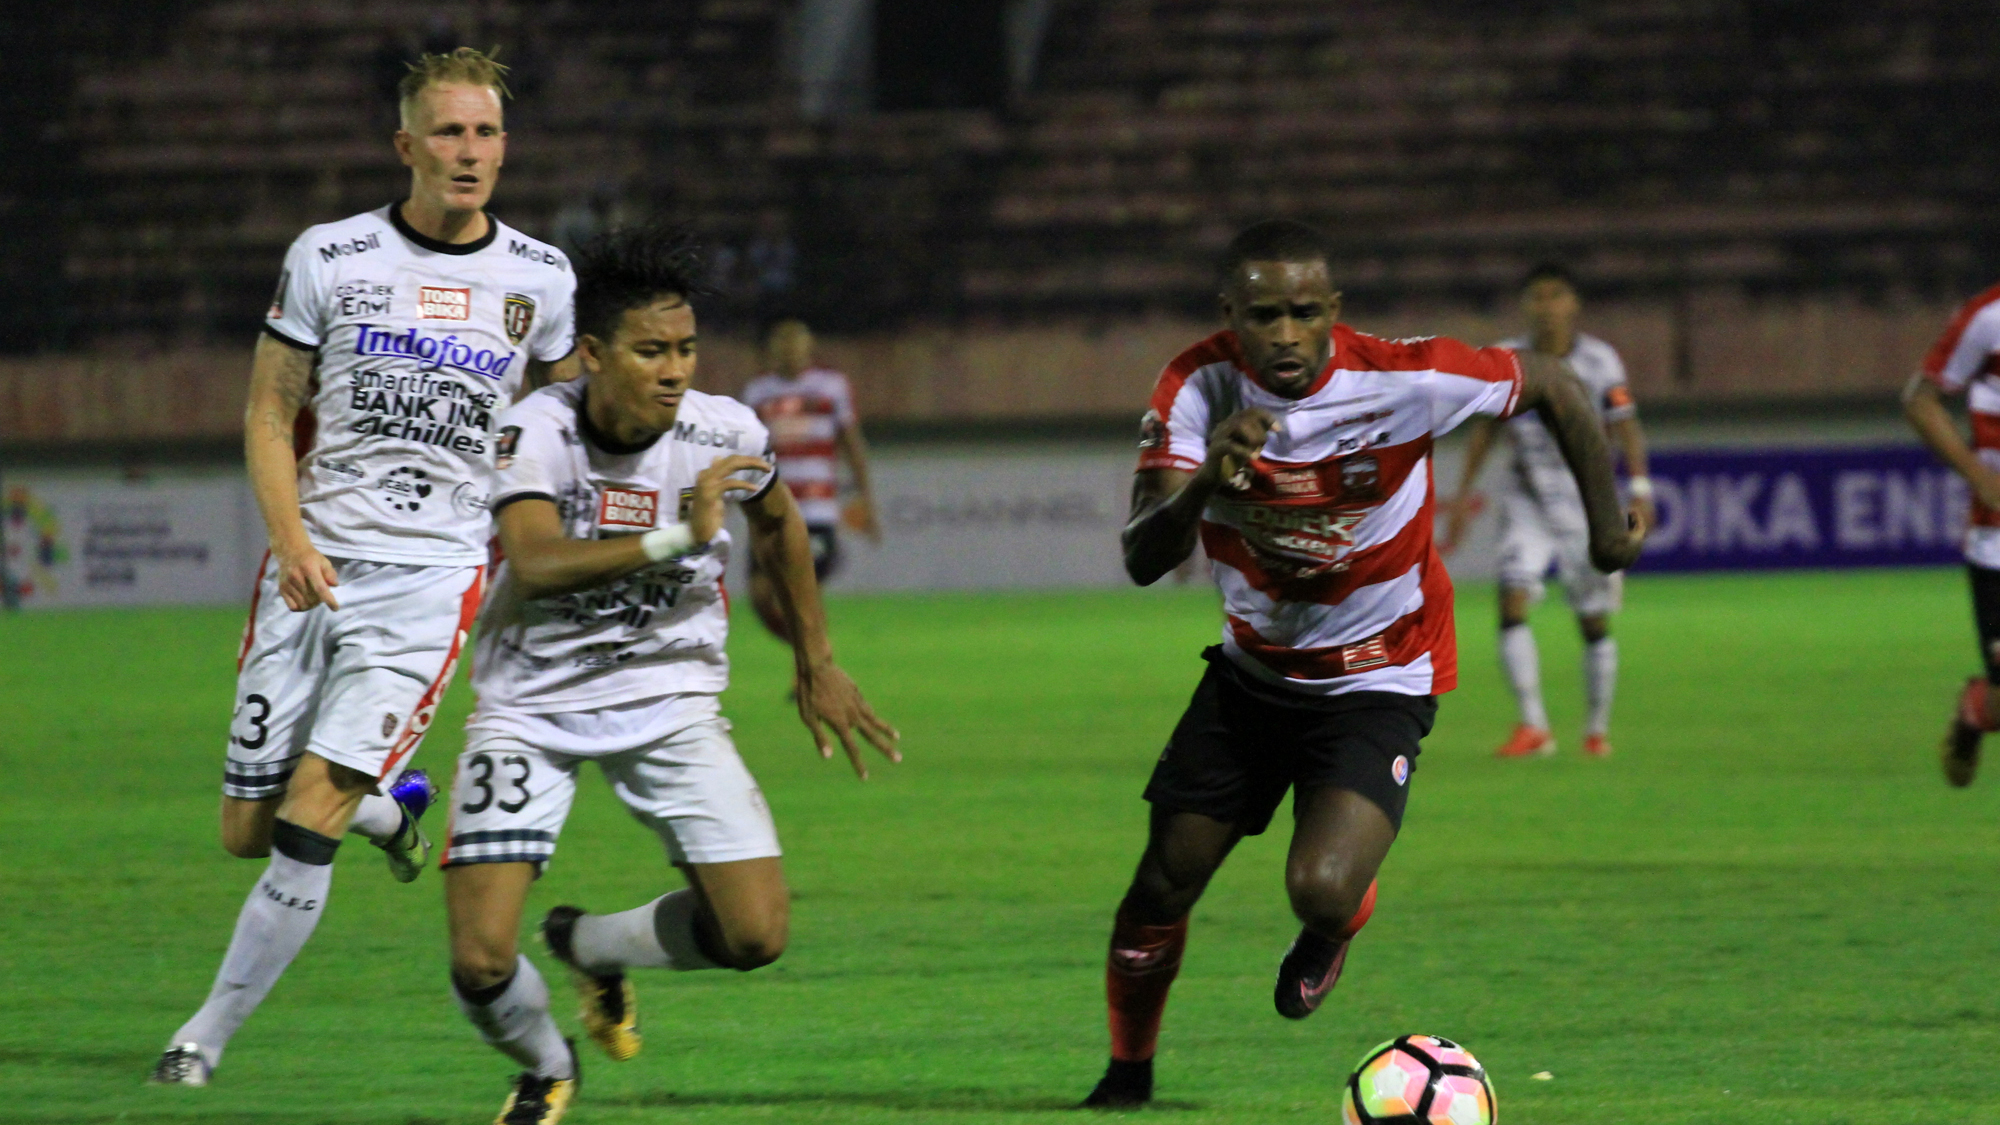 Greg Nwokolo - Madura United & Made Andhika Wijaya - Bali United